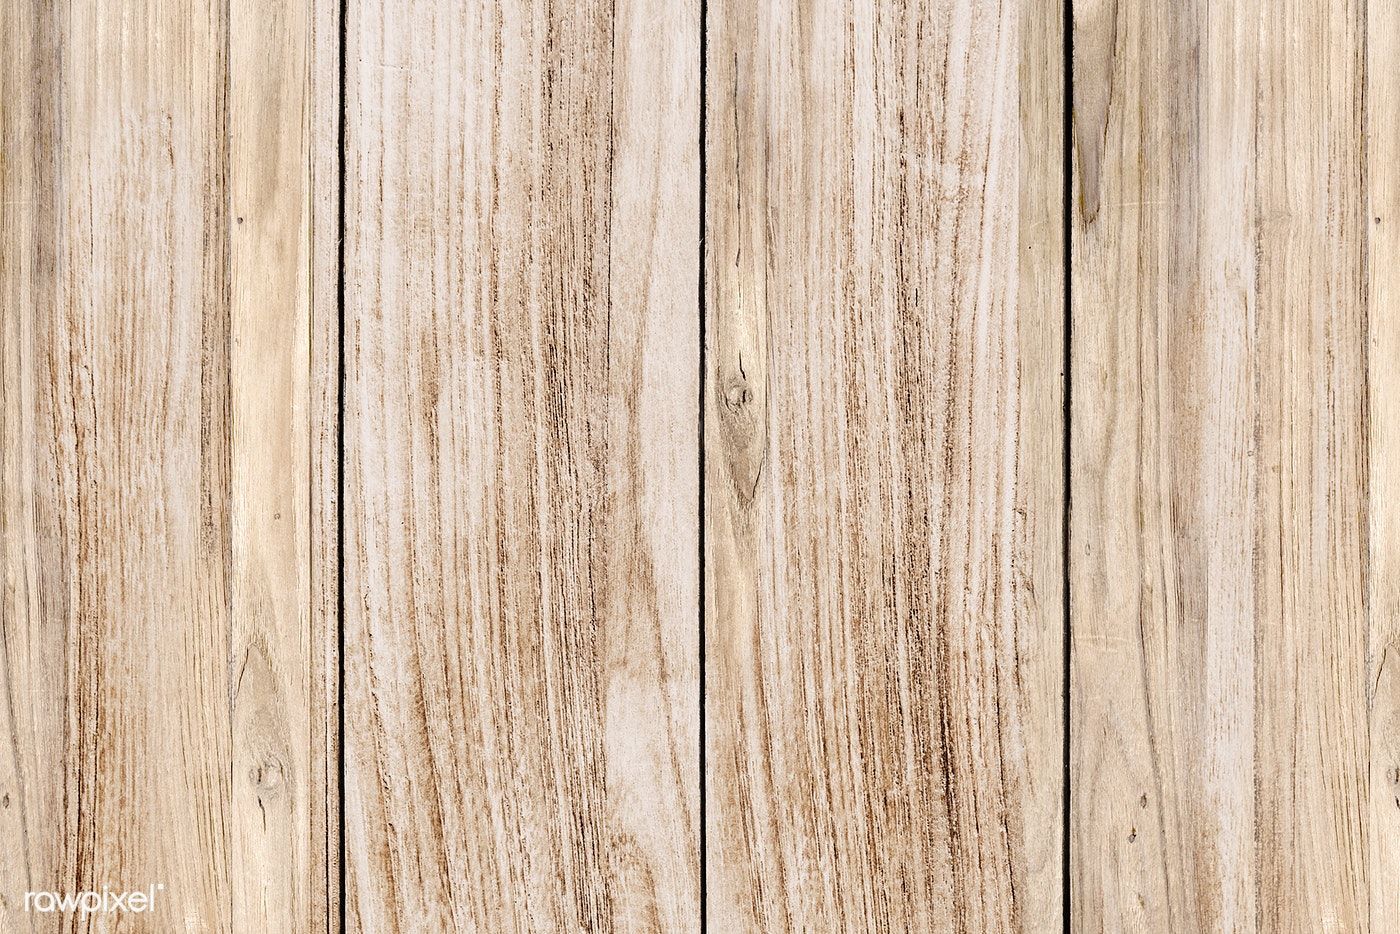 Faded Brown Wooden Texture Flooring Background Free Image By